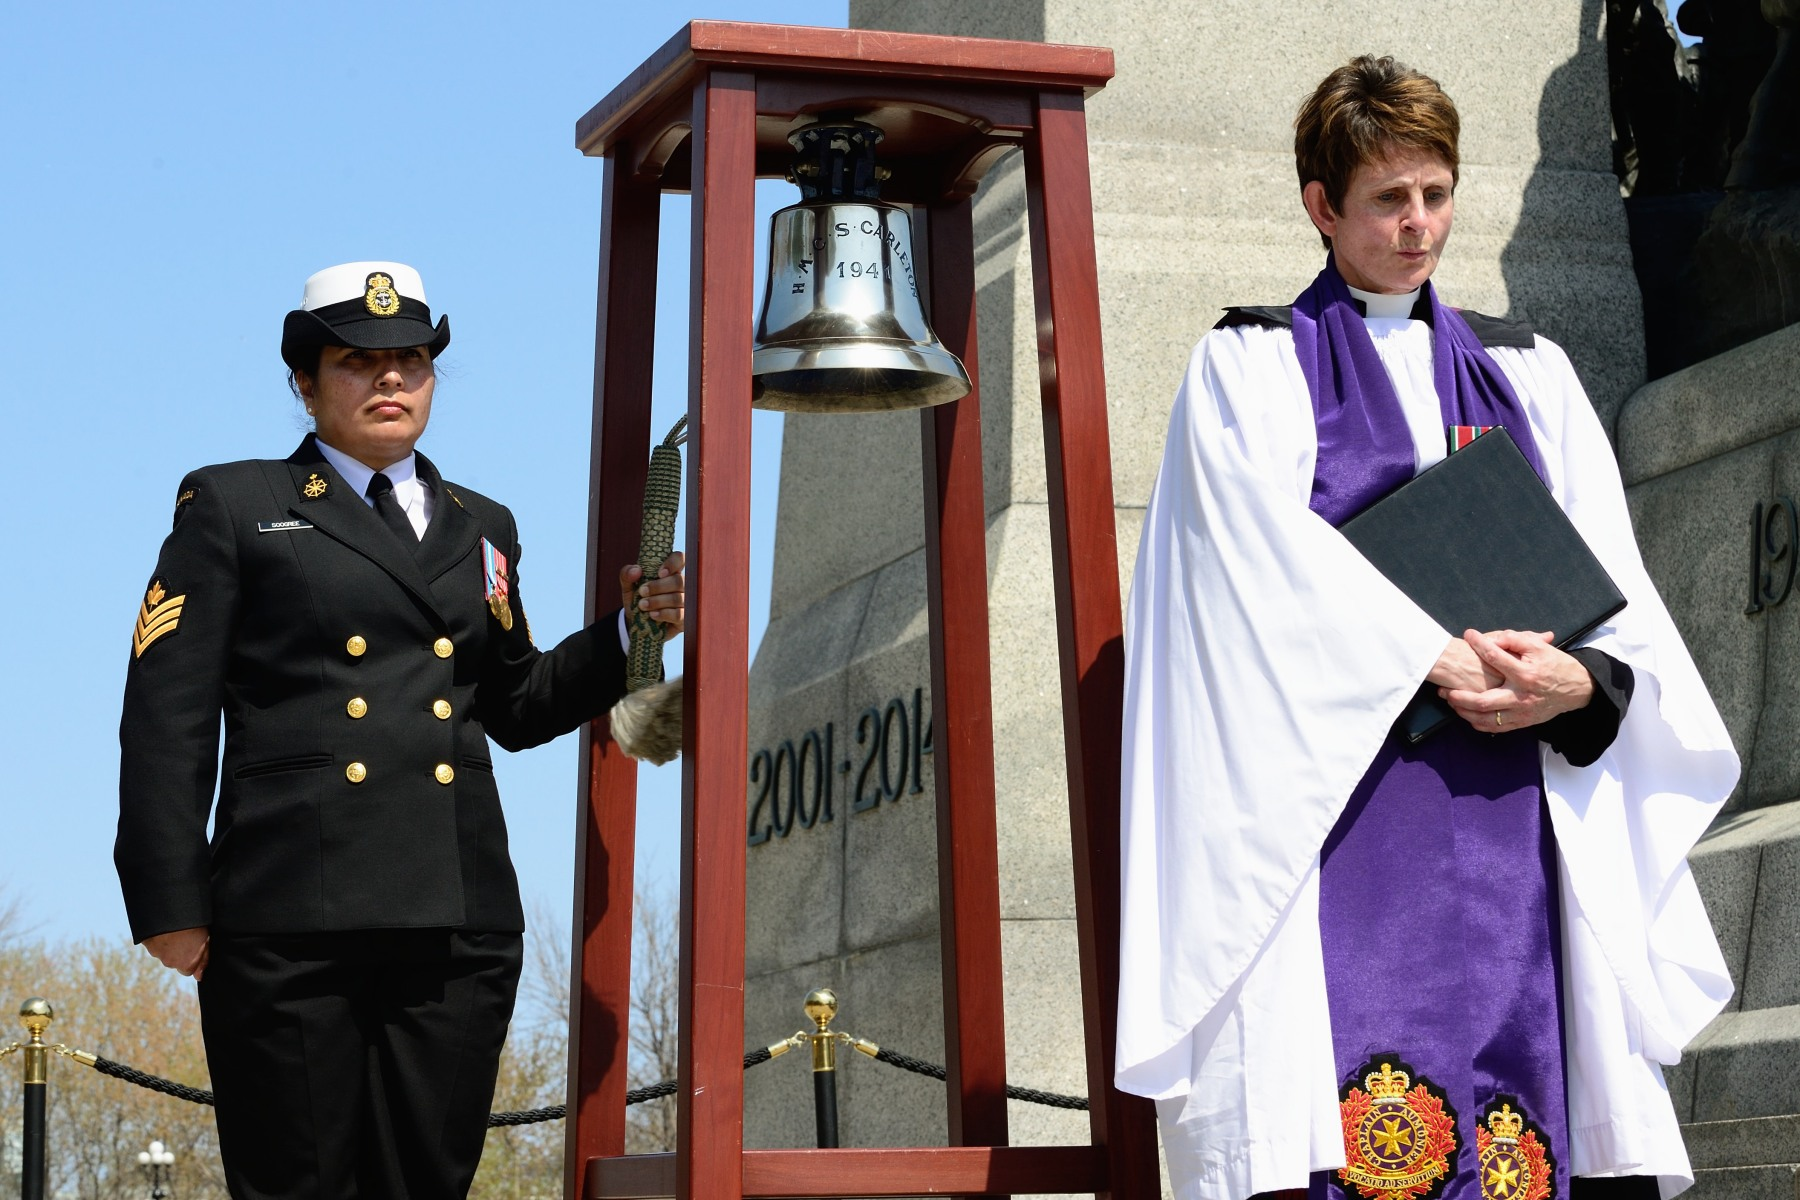 The national commemoration is an annual ceremony that pays tribute to the veterans of the Royal Canadian Navy, the Women's Royal Canadian Naval Service, Royal Canadian Air Force and the Merchant Navy who served in the battle.